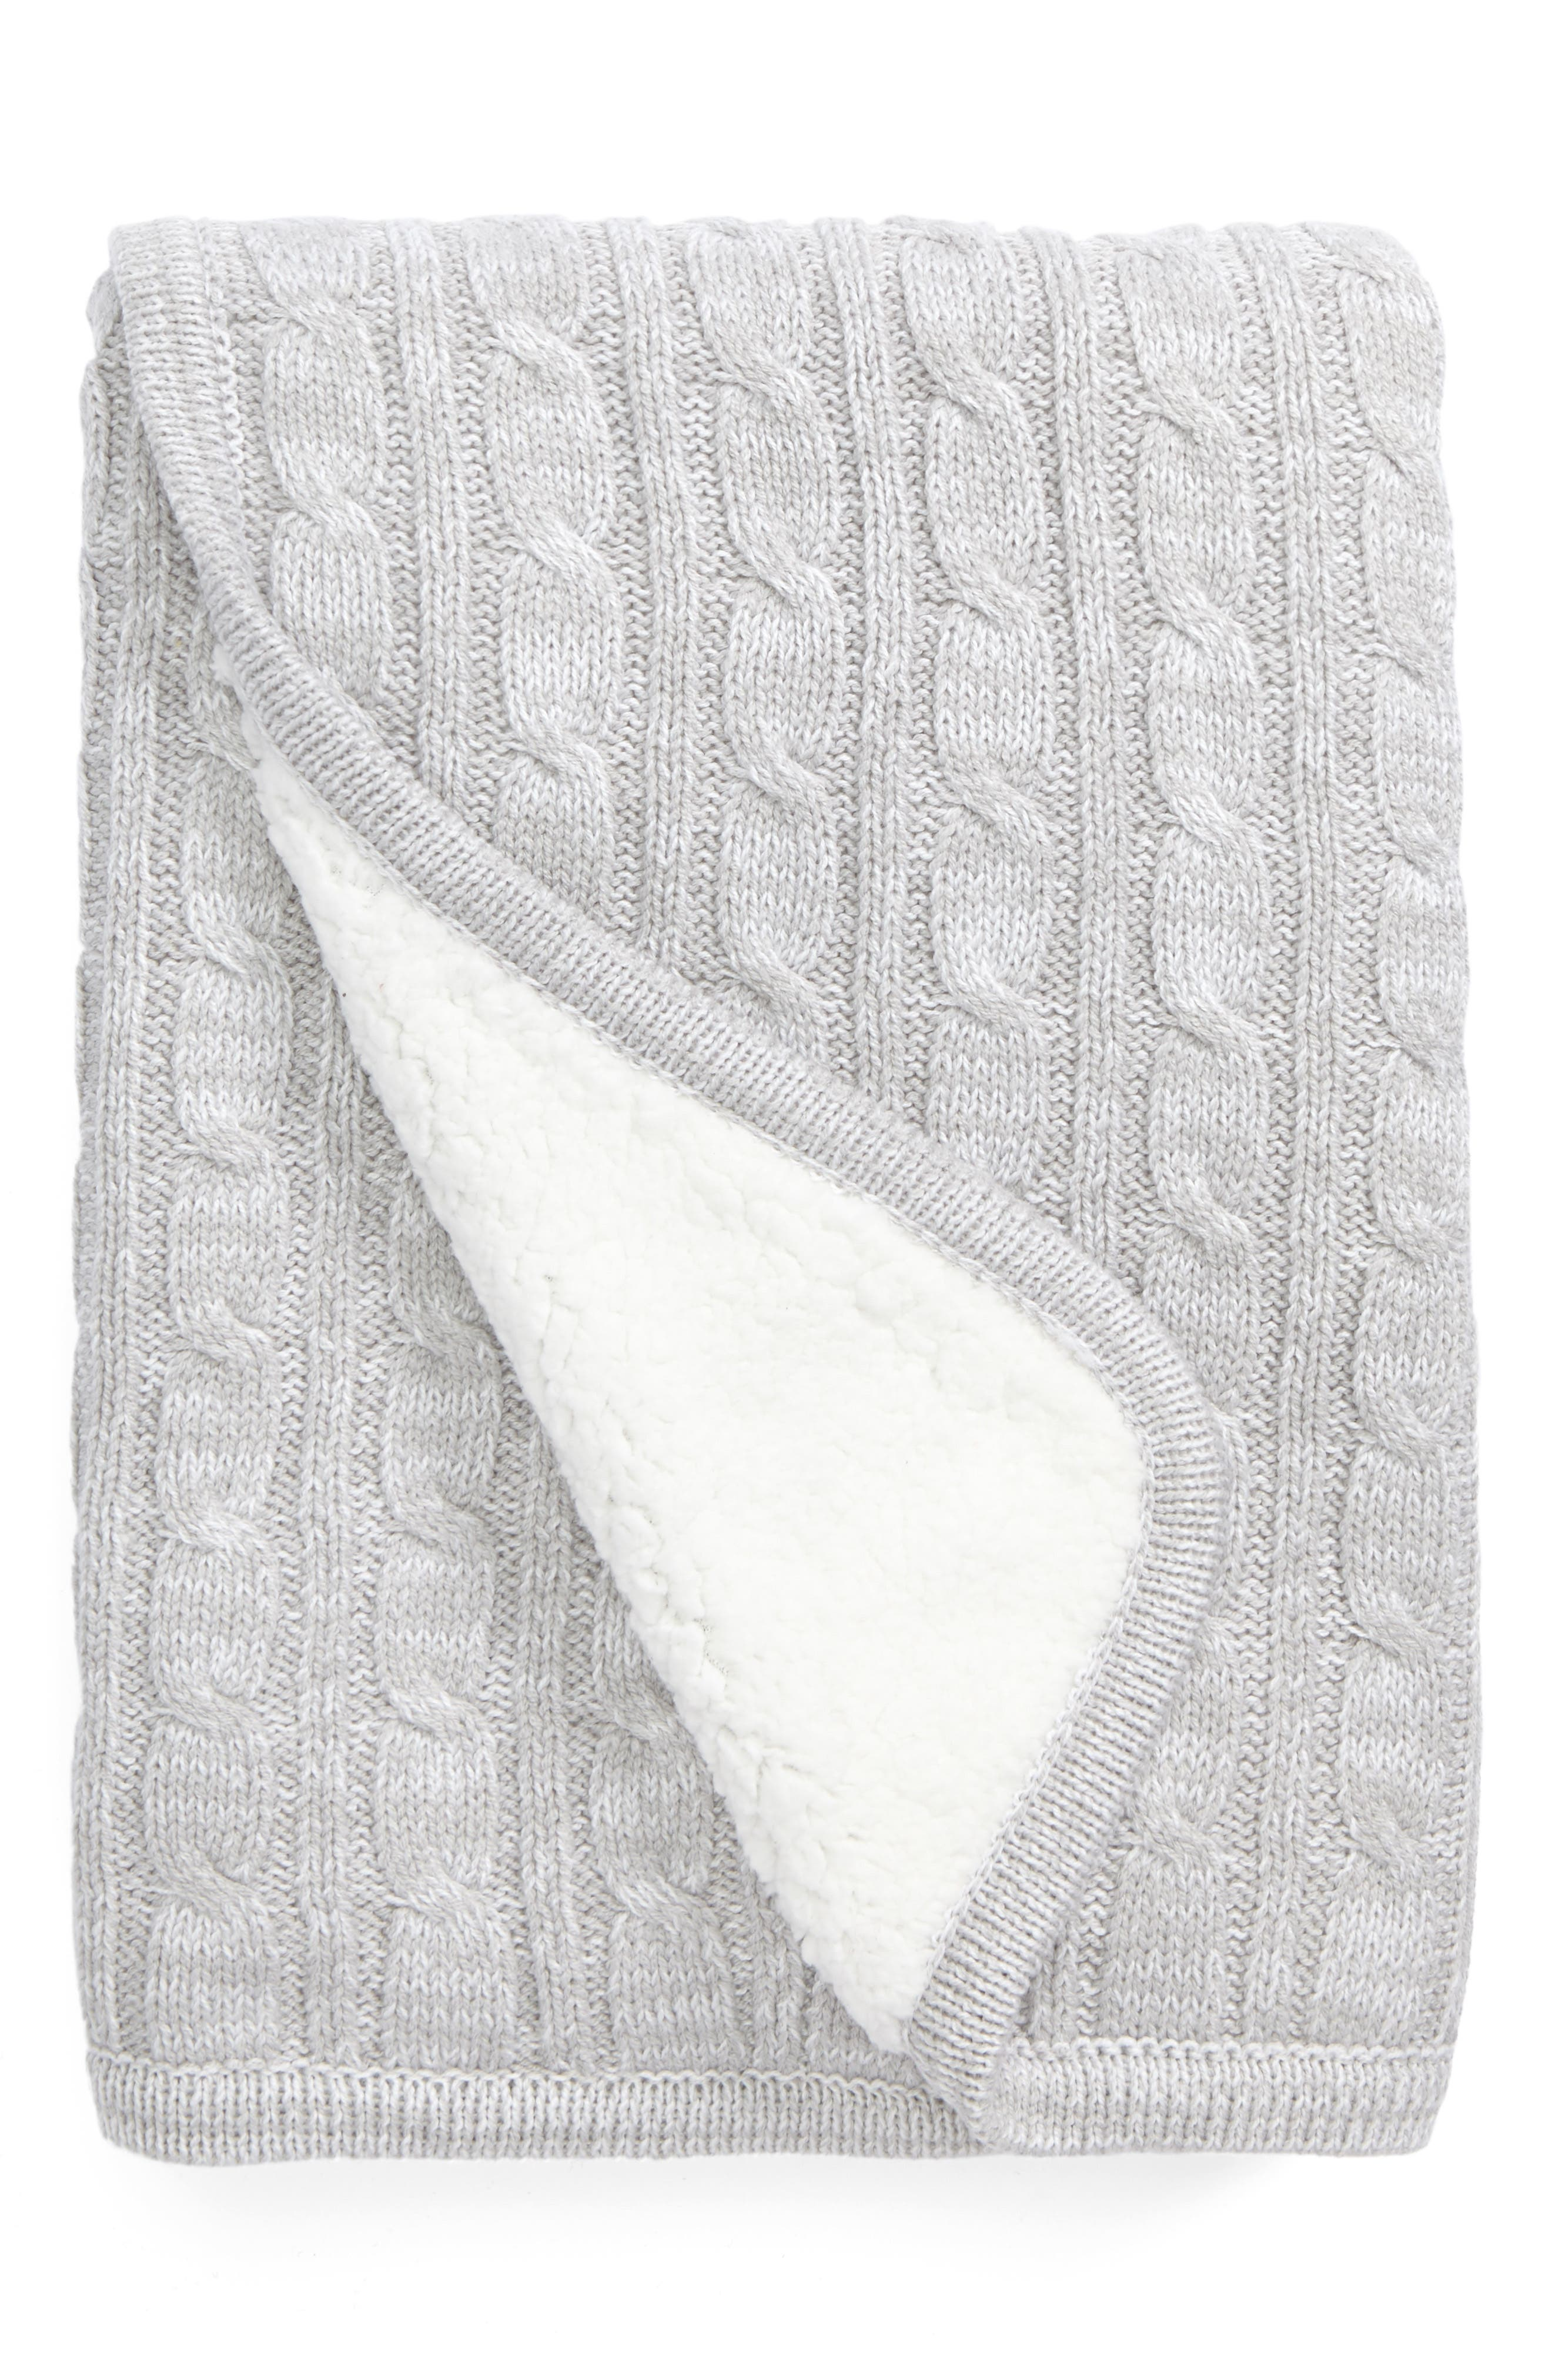 Cable Knit Blanket,                         Main,                         color, 050